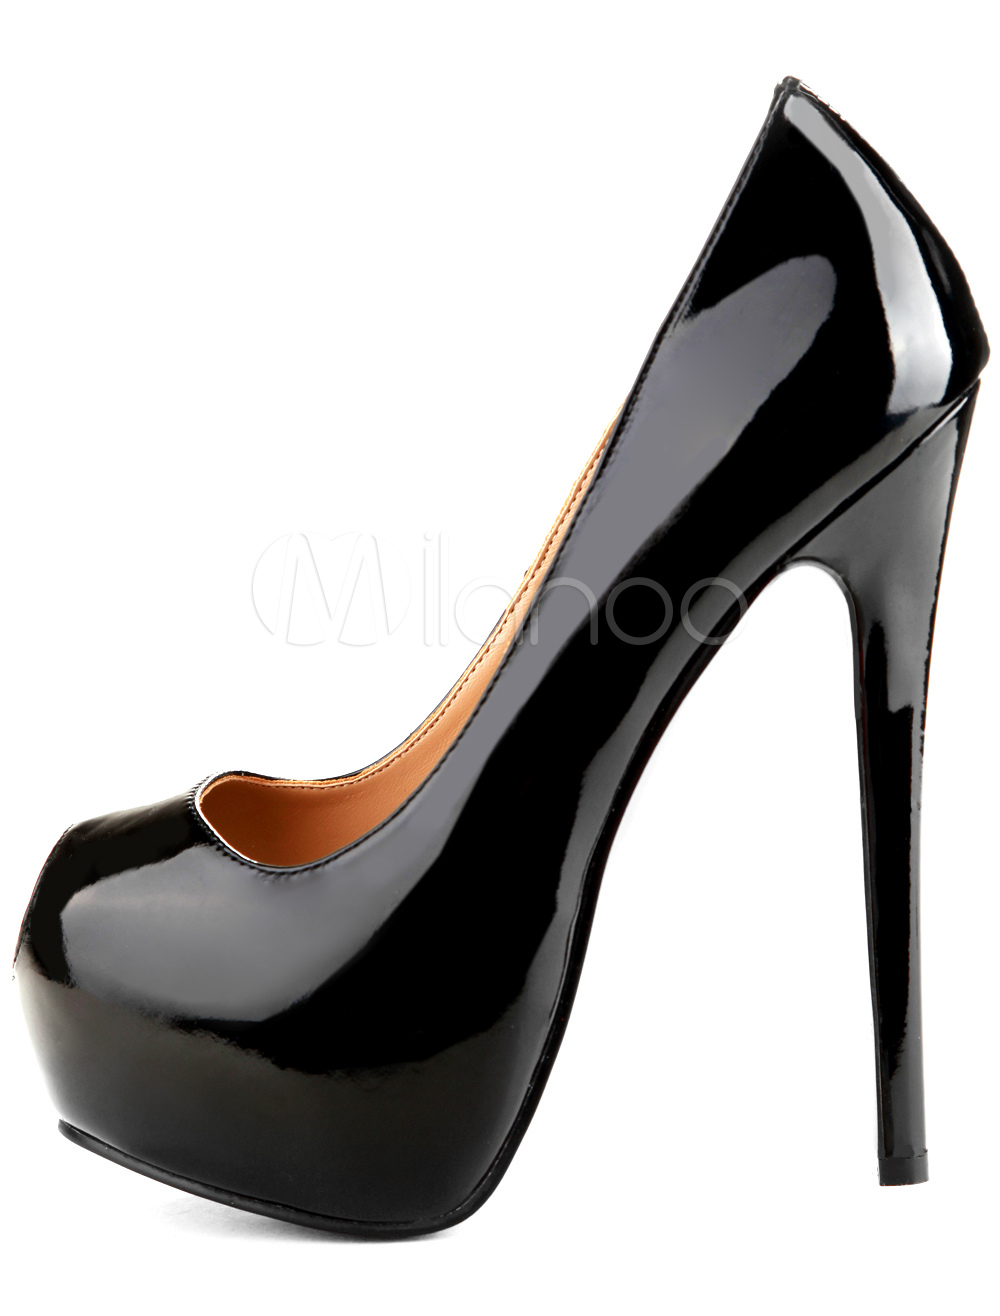 6482aa08ae Black High Heels Women Dress Shoes Peep Toe Platform Slip On Pumps -  Milanoo.com